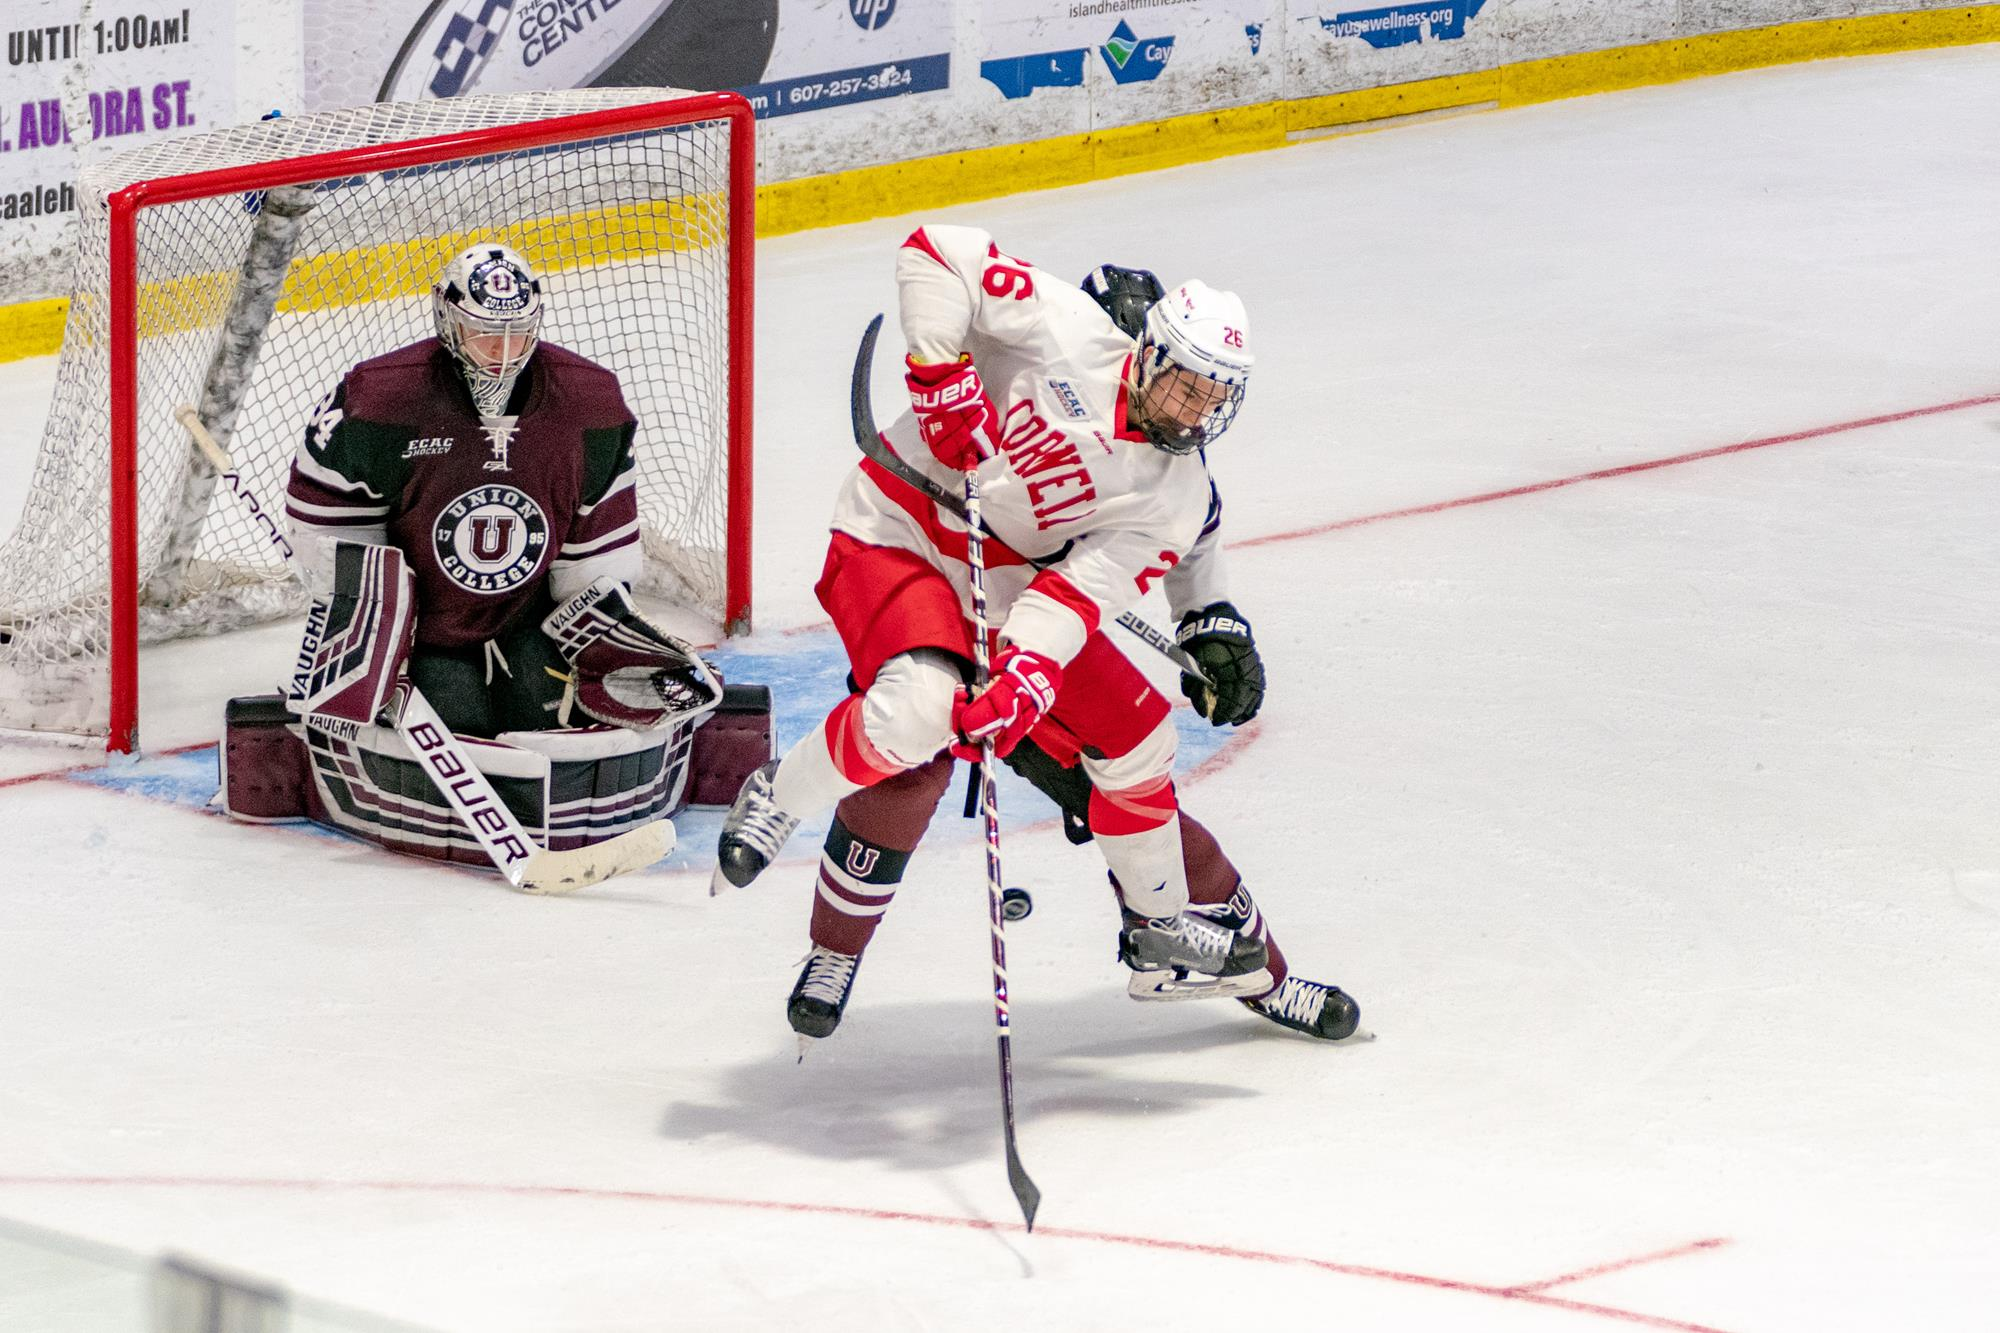 Tristan Mullin redirects a shot from the slot during the Cornell Big Red men's ice hockey team's 4-0 victory over Union in Game 2 of an ECAC Hockey Championship quarterfinal series on March 16, 2019 at Lynah Rink in Ithaca, N.Y. (Dave Burbank/Cornell Athletics)